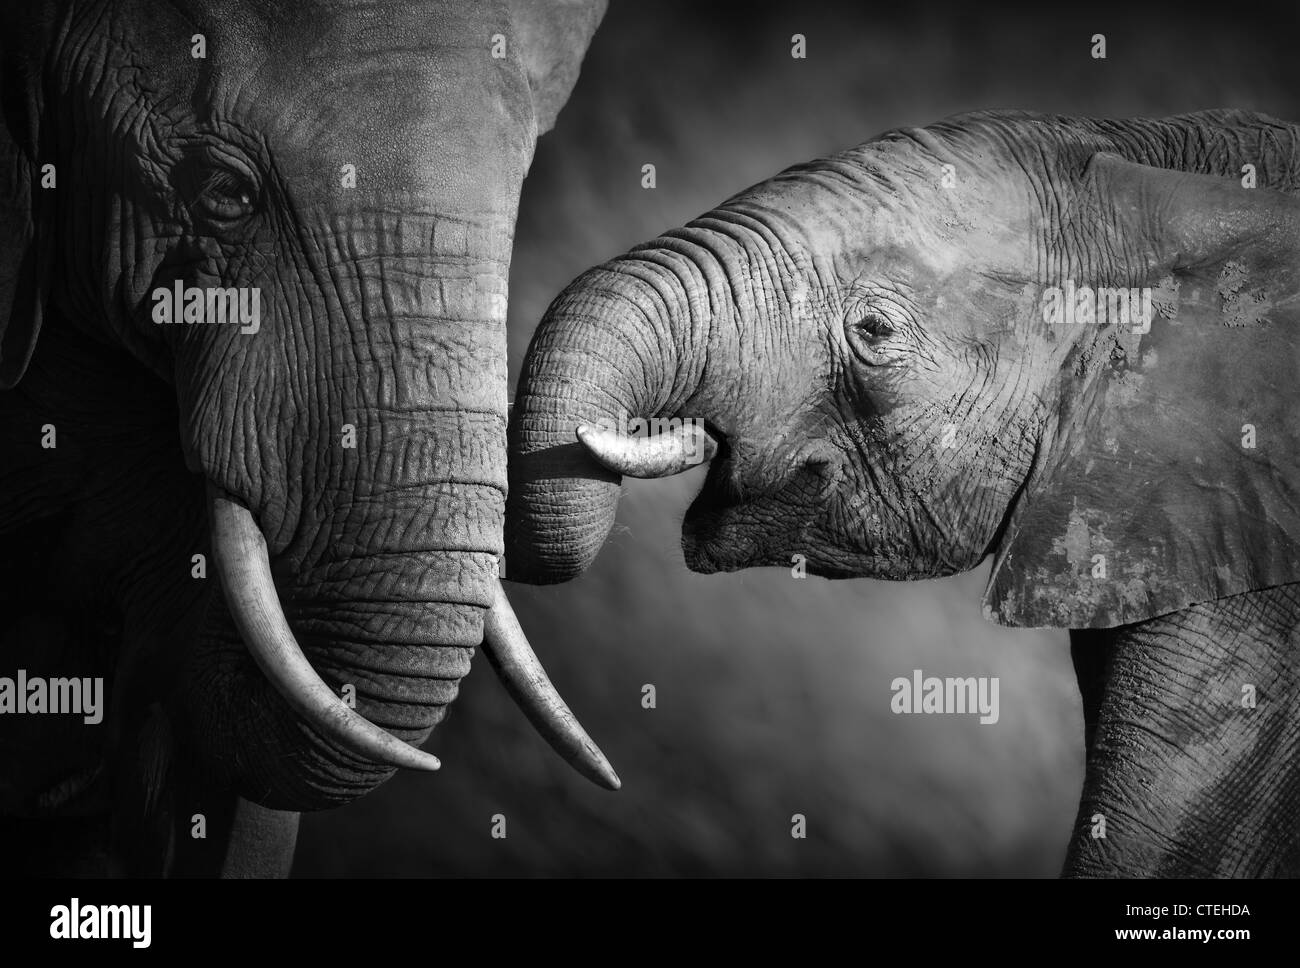 Elephants showing affection (Artistic processing) - Stock Image